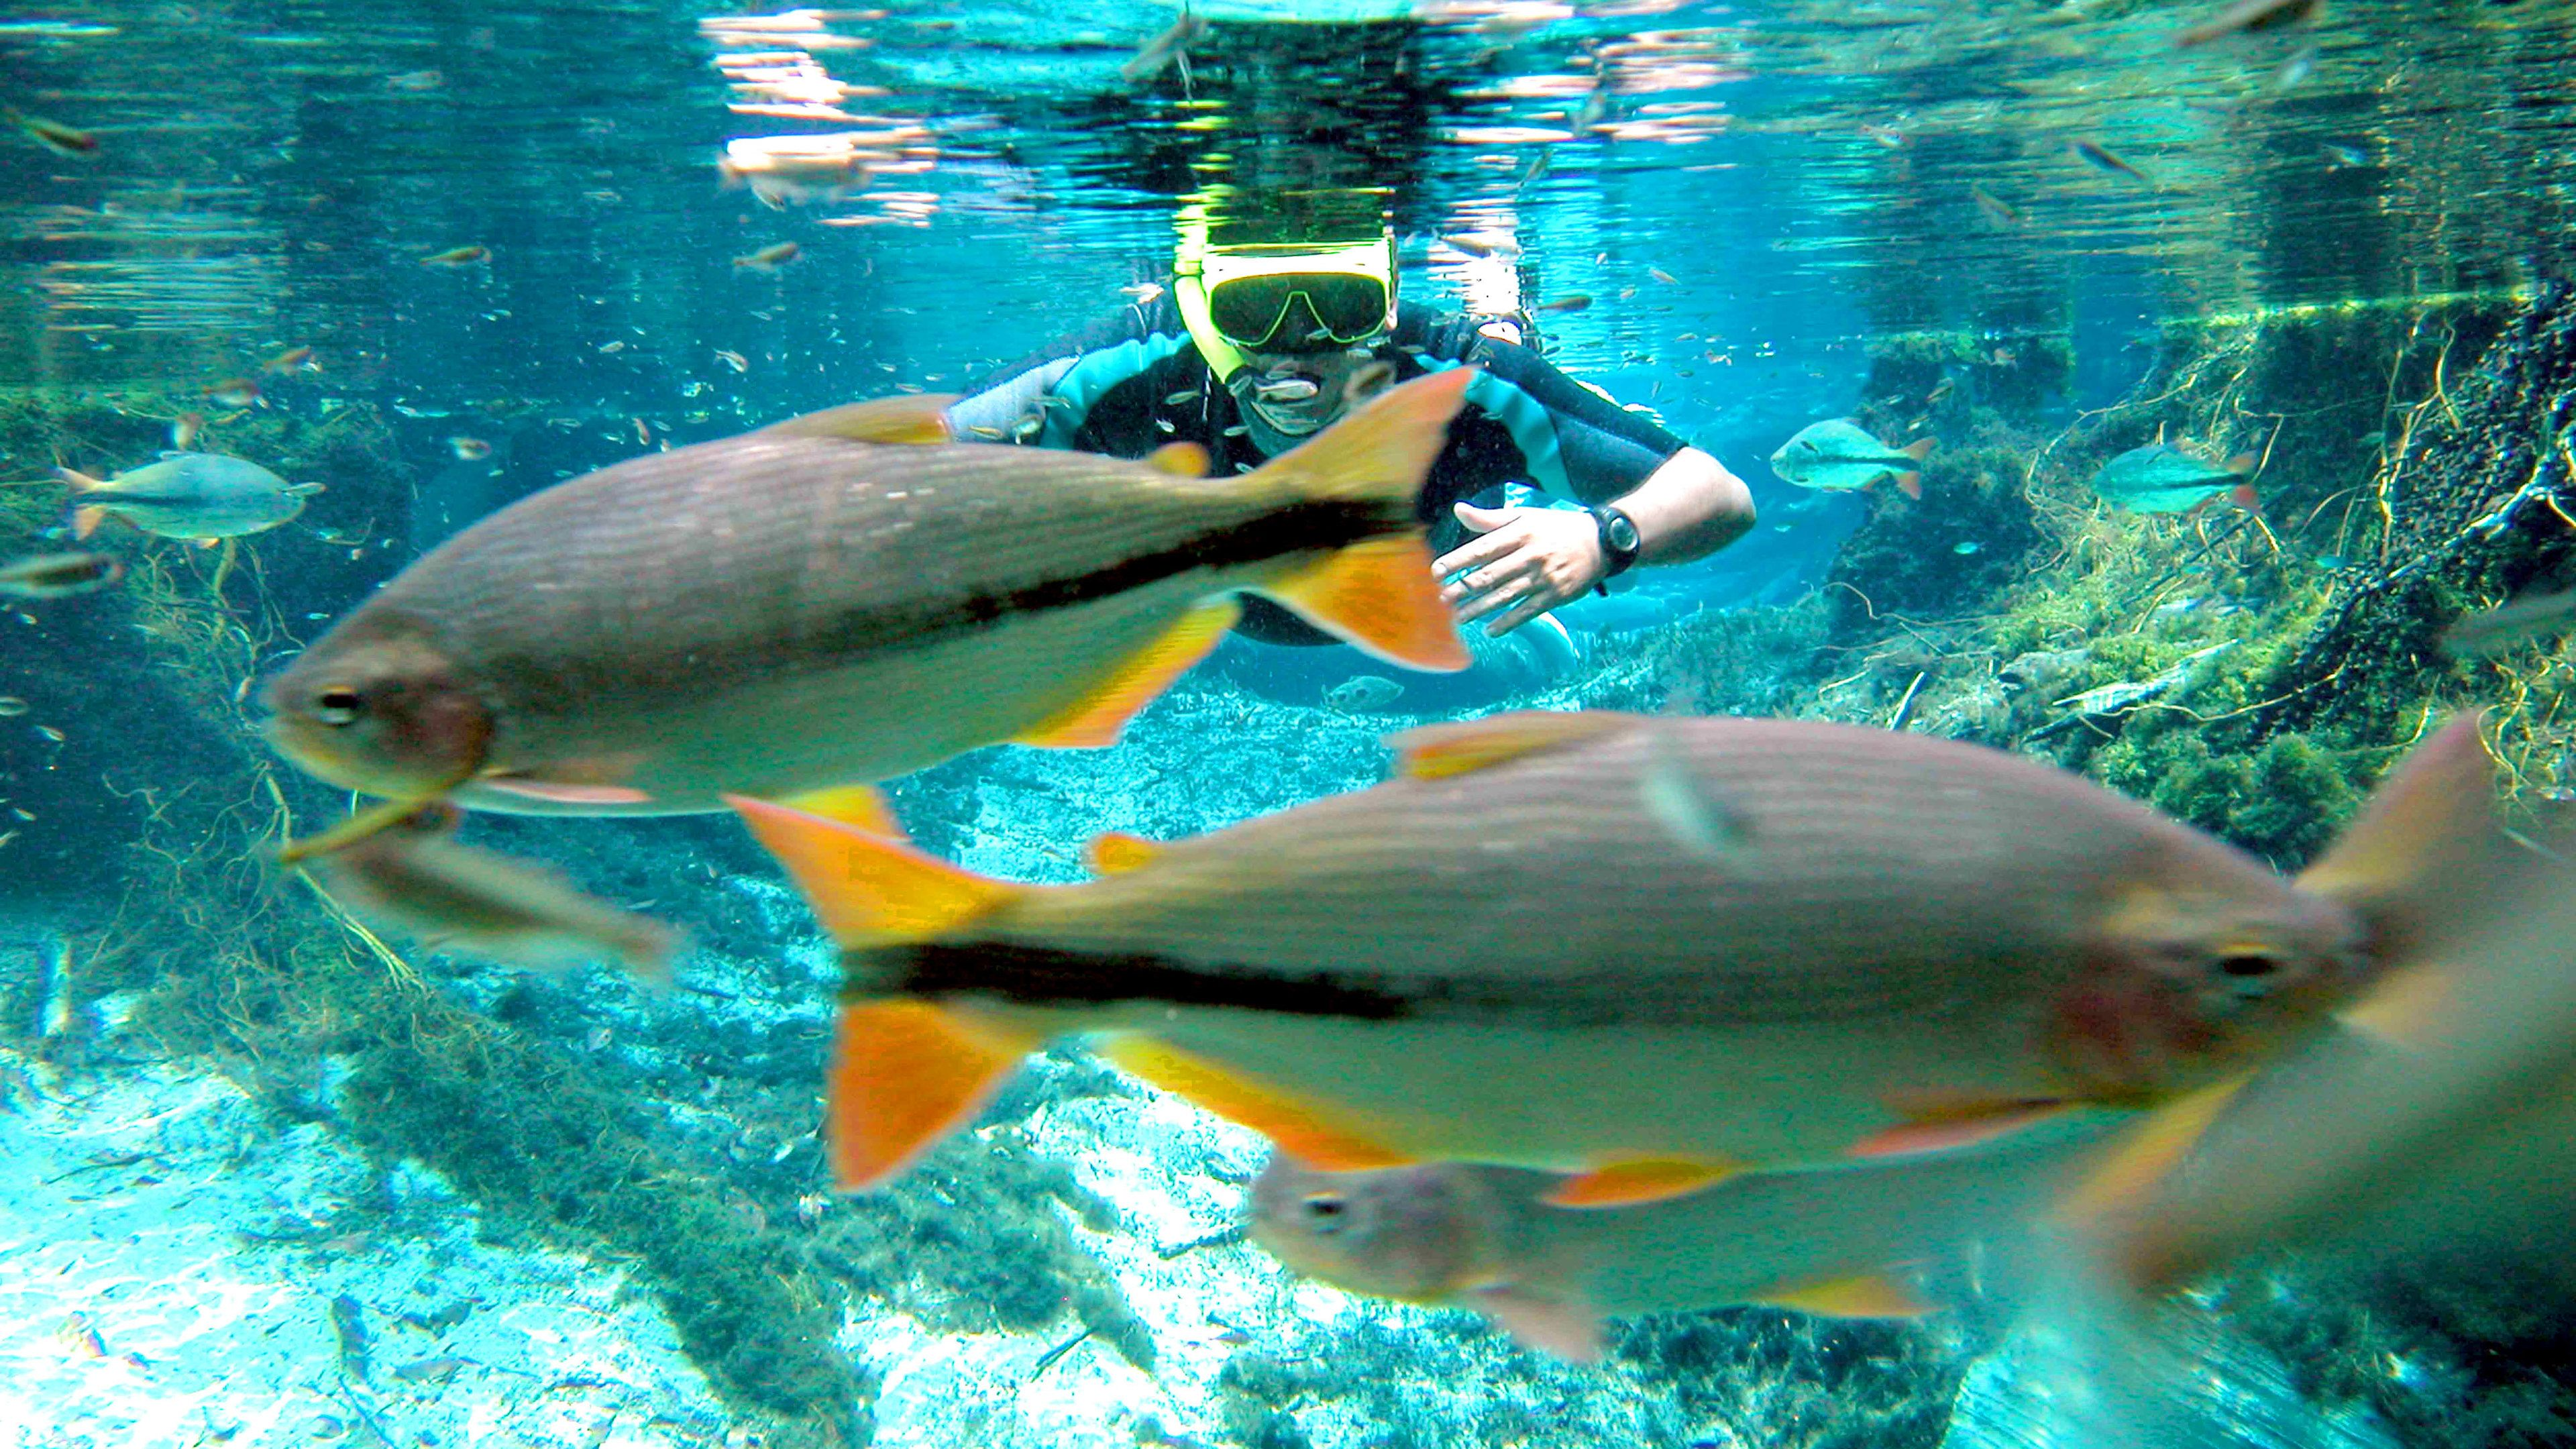 Snorkeler in Aquarium next to fish